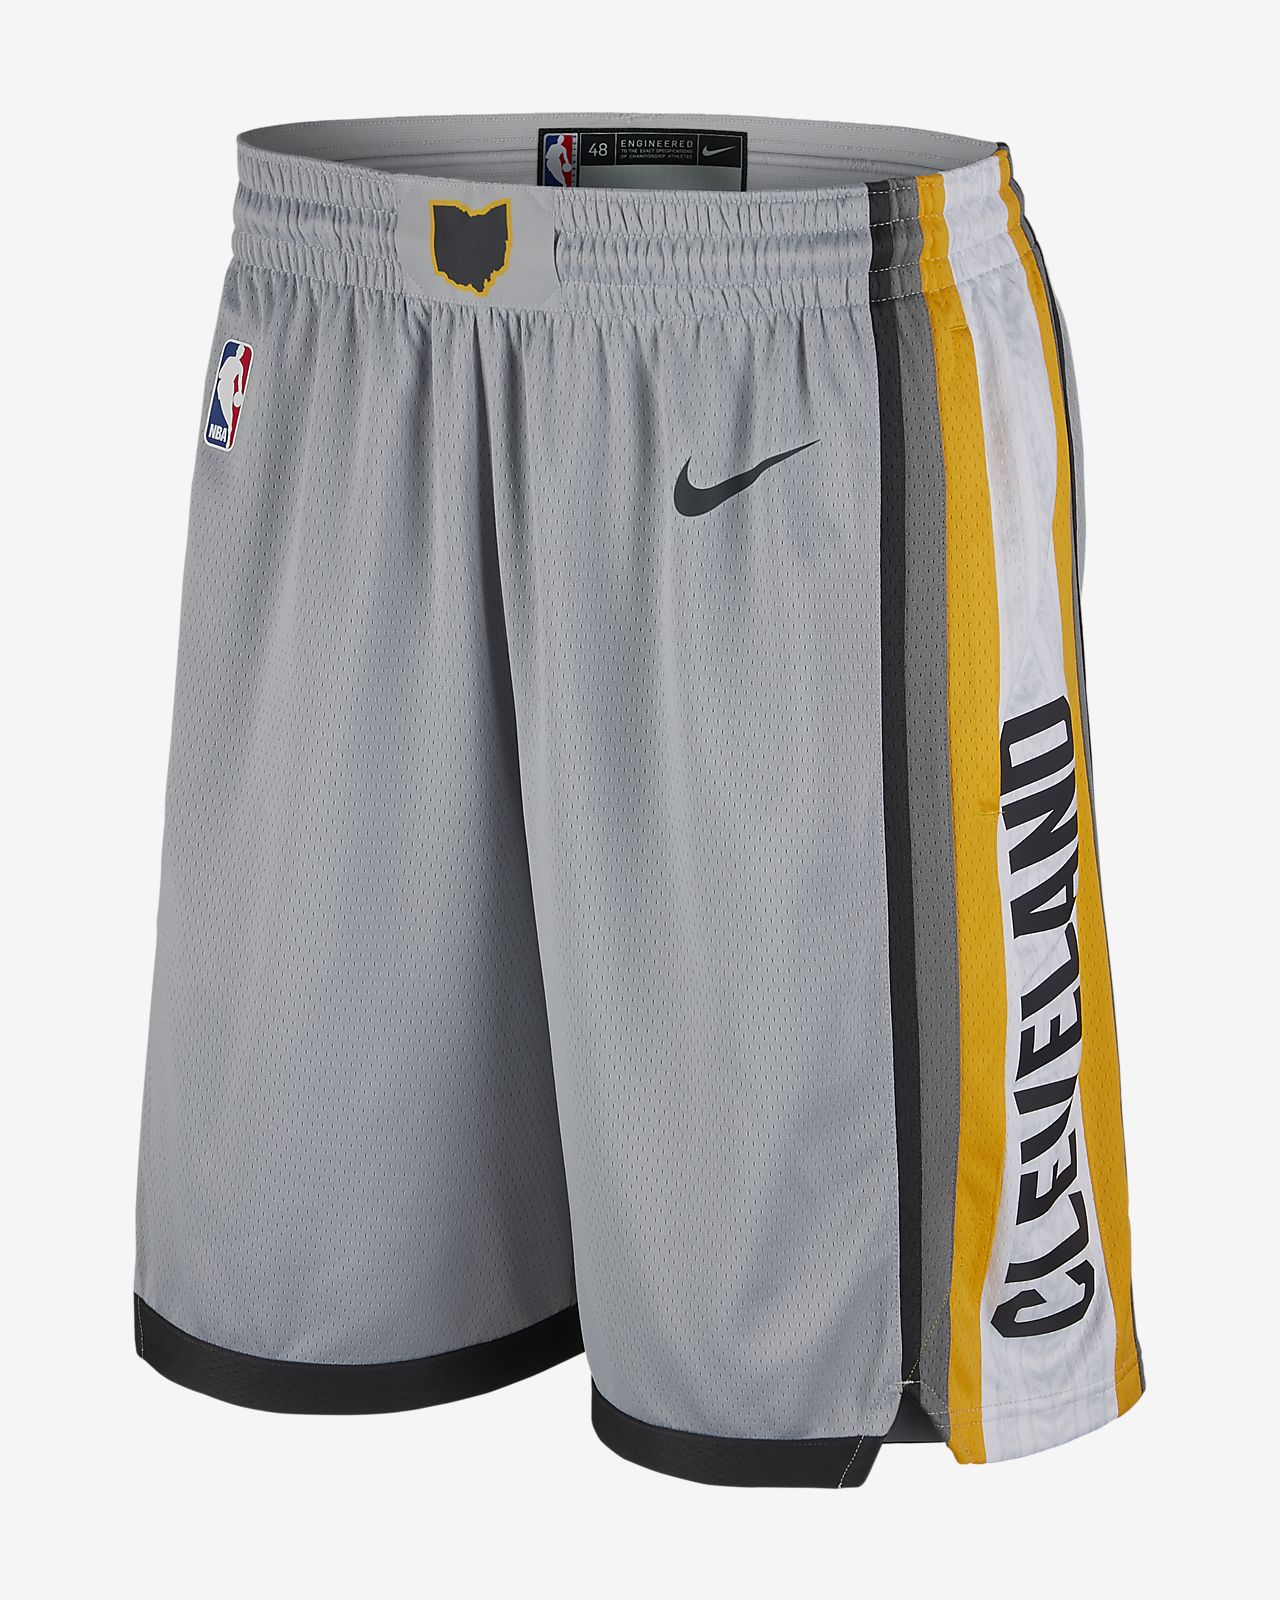 3102caf925f Cleveland Cavaliers Nike City Edition Swingman Men s NBA Shorts ...